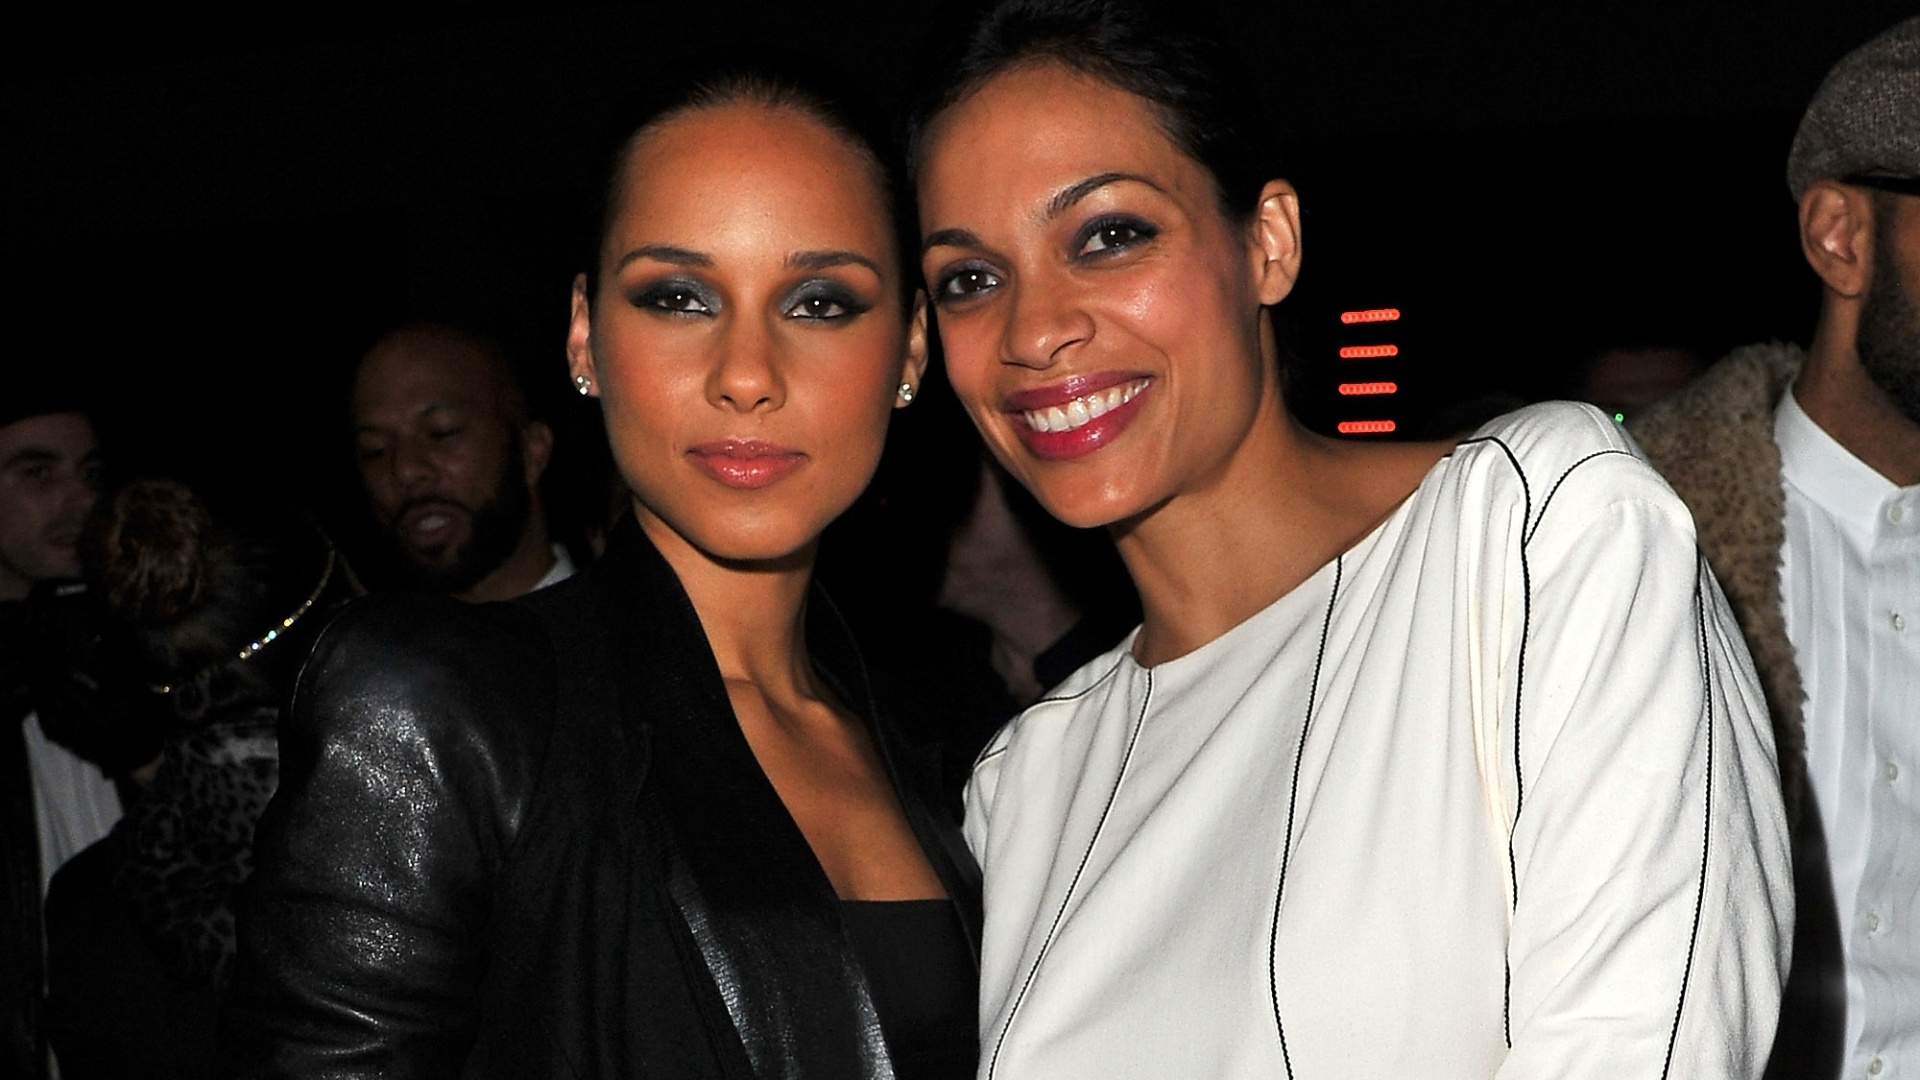 Alicia Keys e Rosario Dawson em desfile da grife de Kanye West (6/3/12)